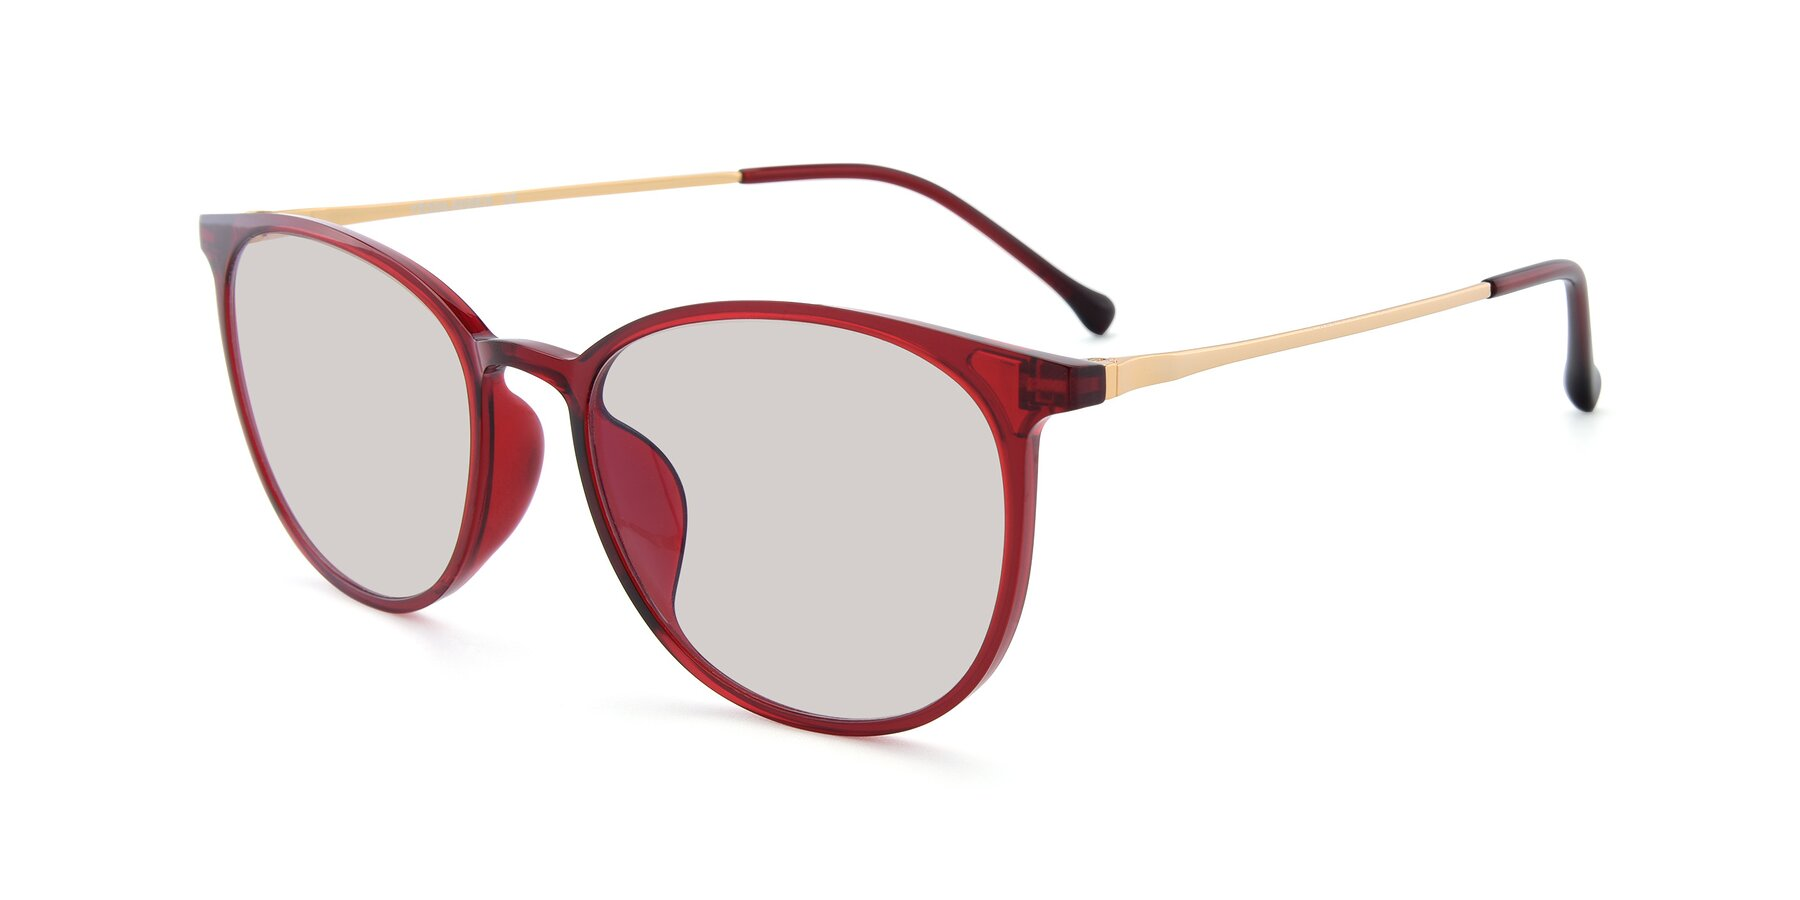 Angle of XC-6006 in Wine-Gold with Light Brown Tinted Lenses